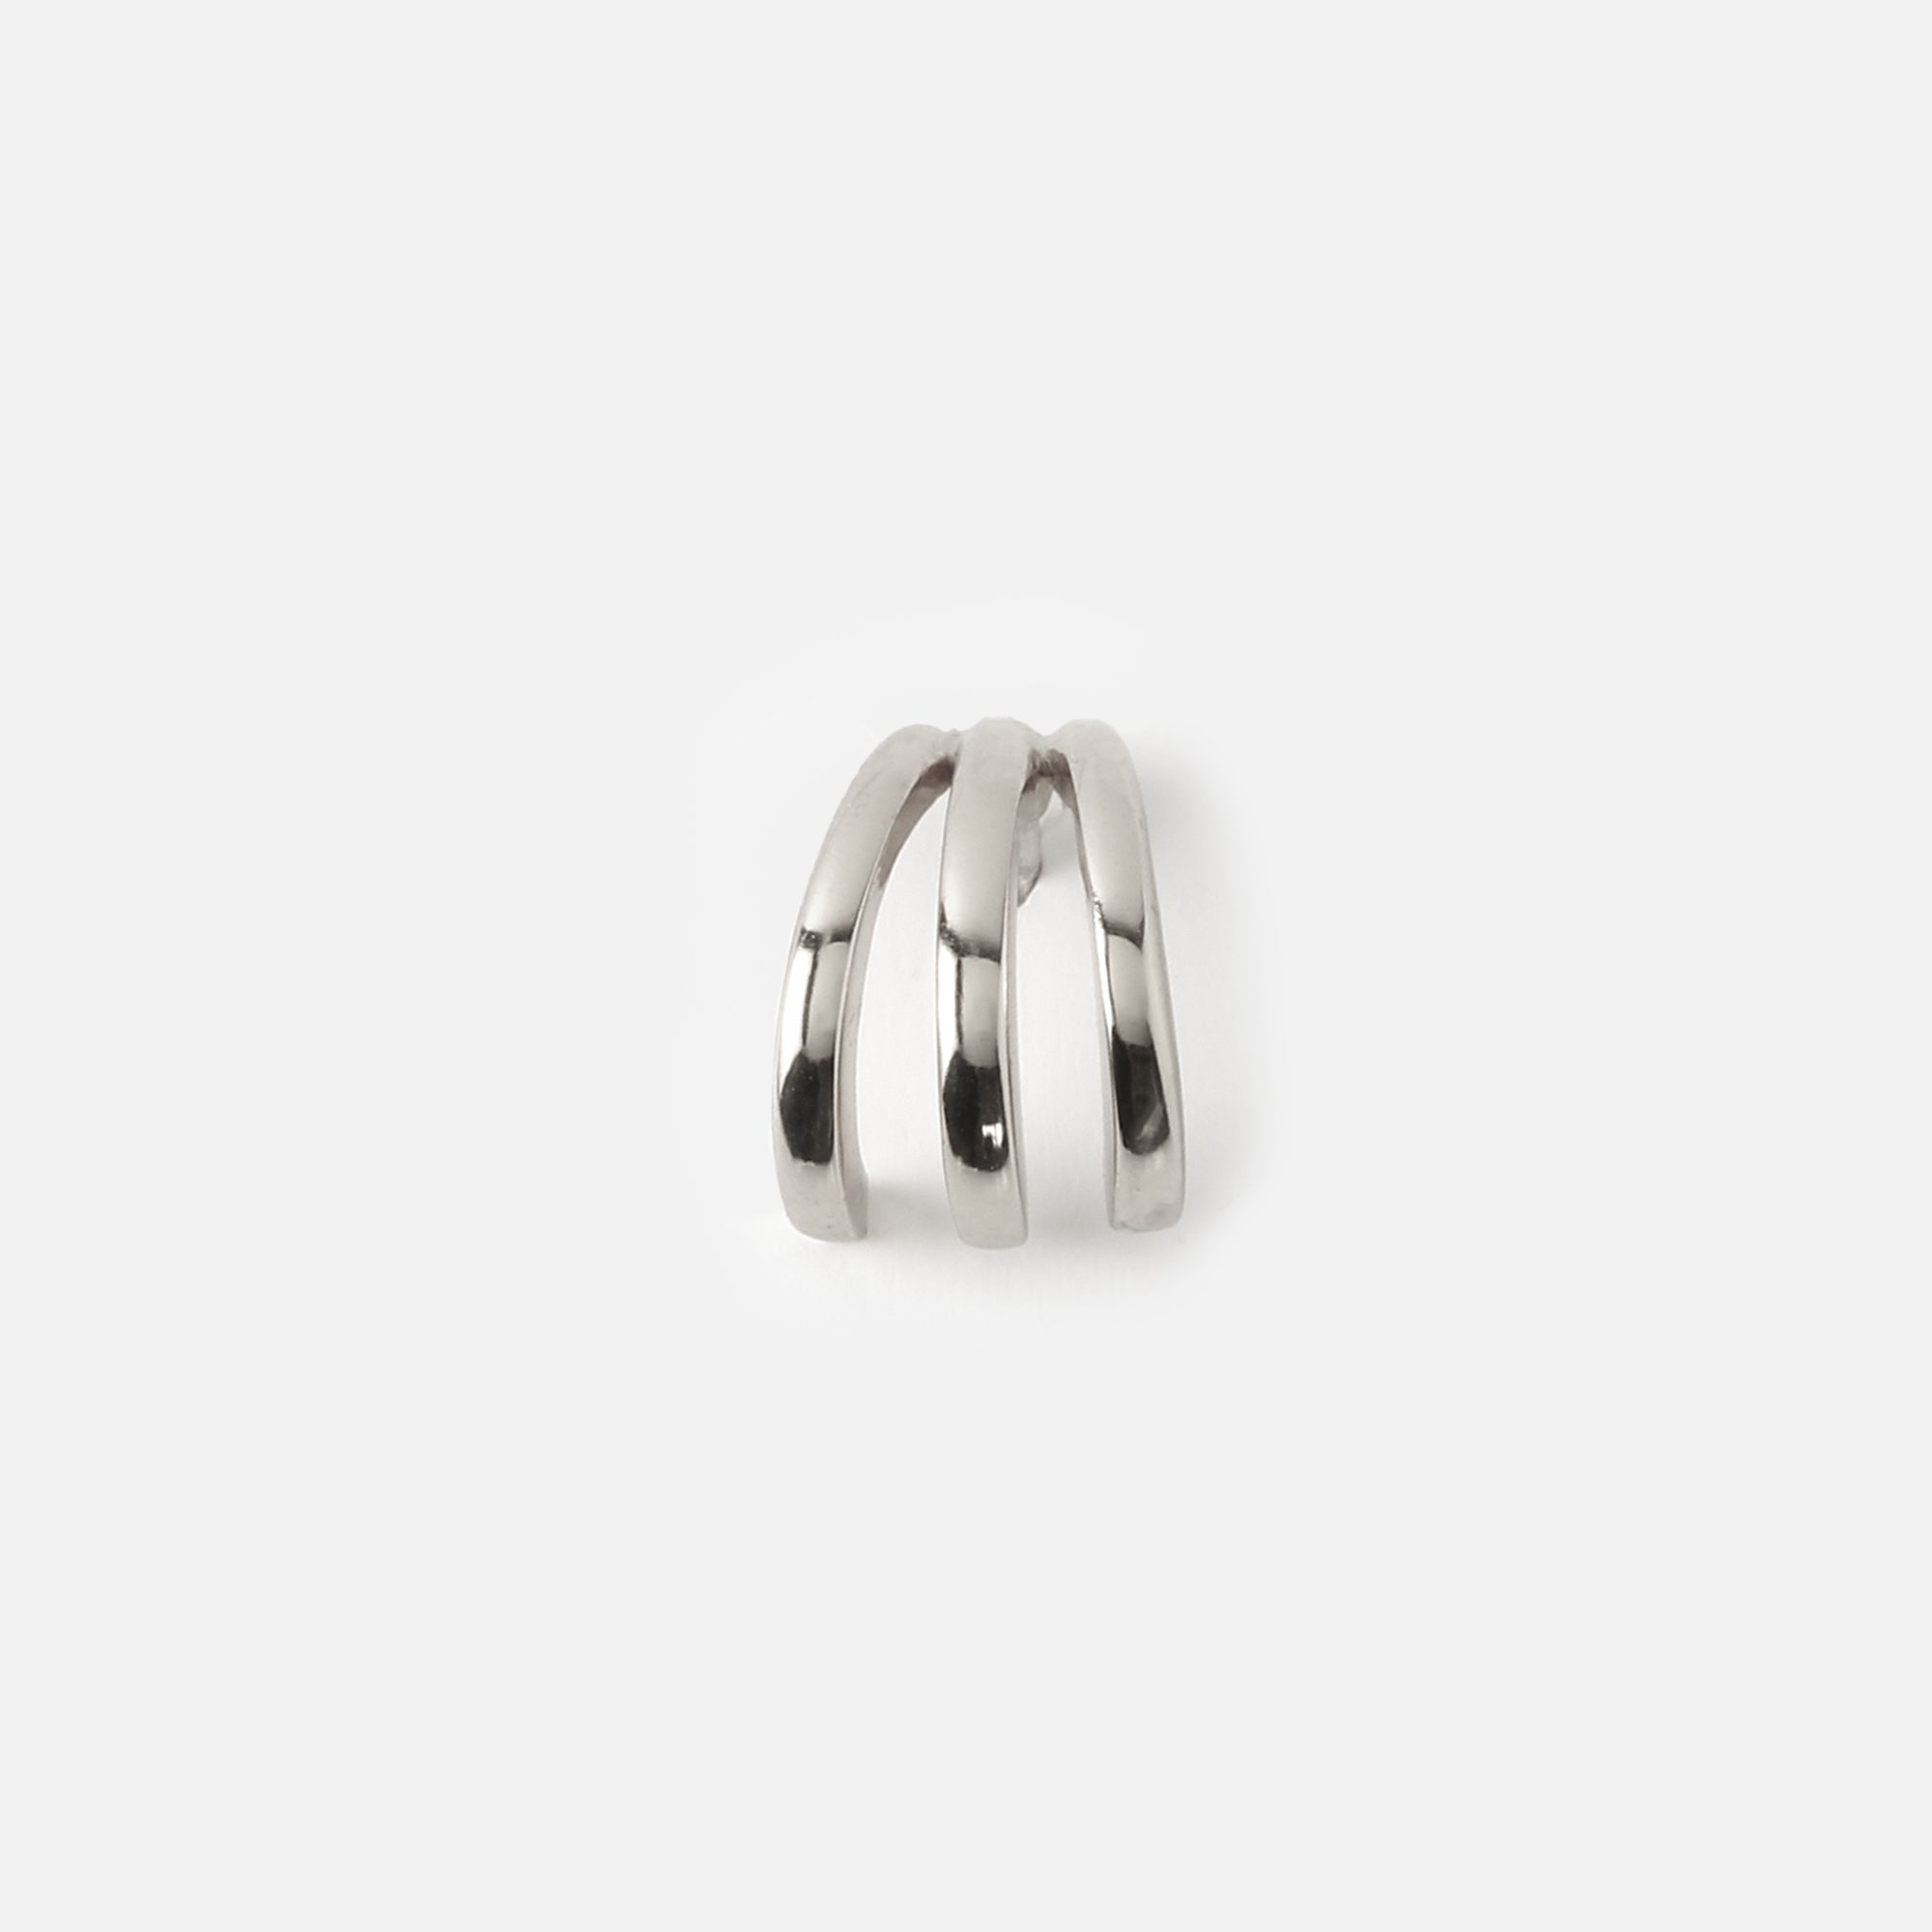 Three Bar Stud Ear Cuff - Silver